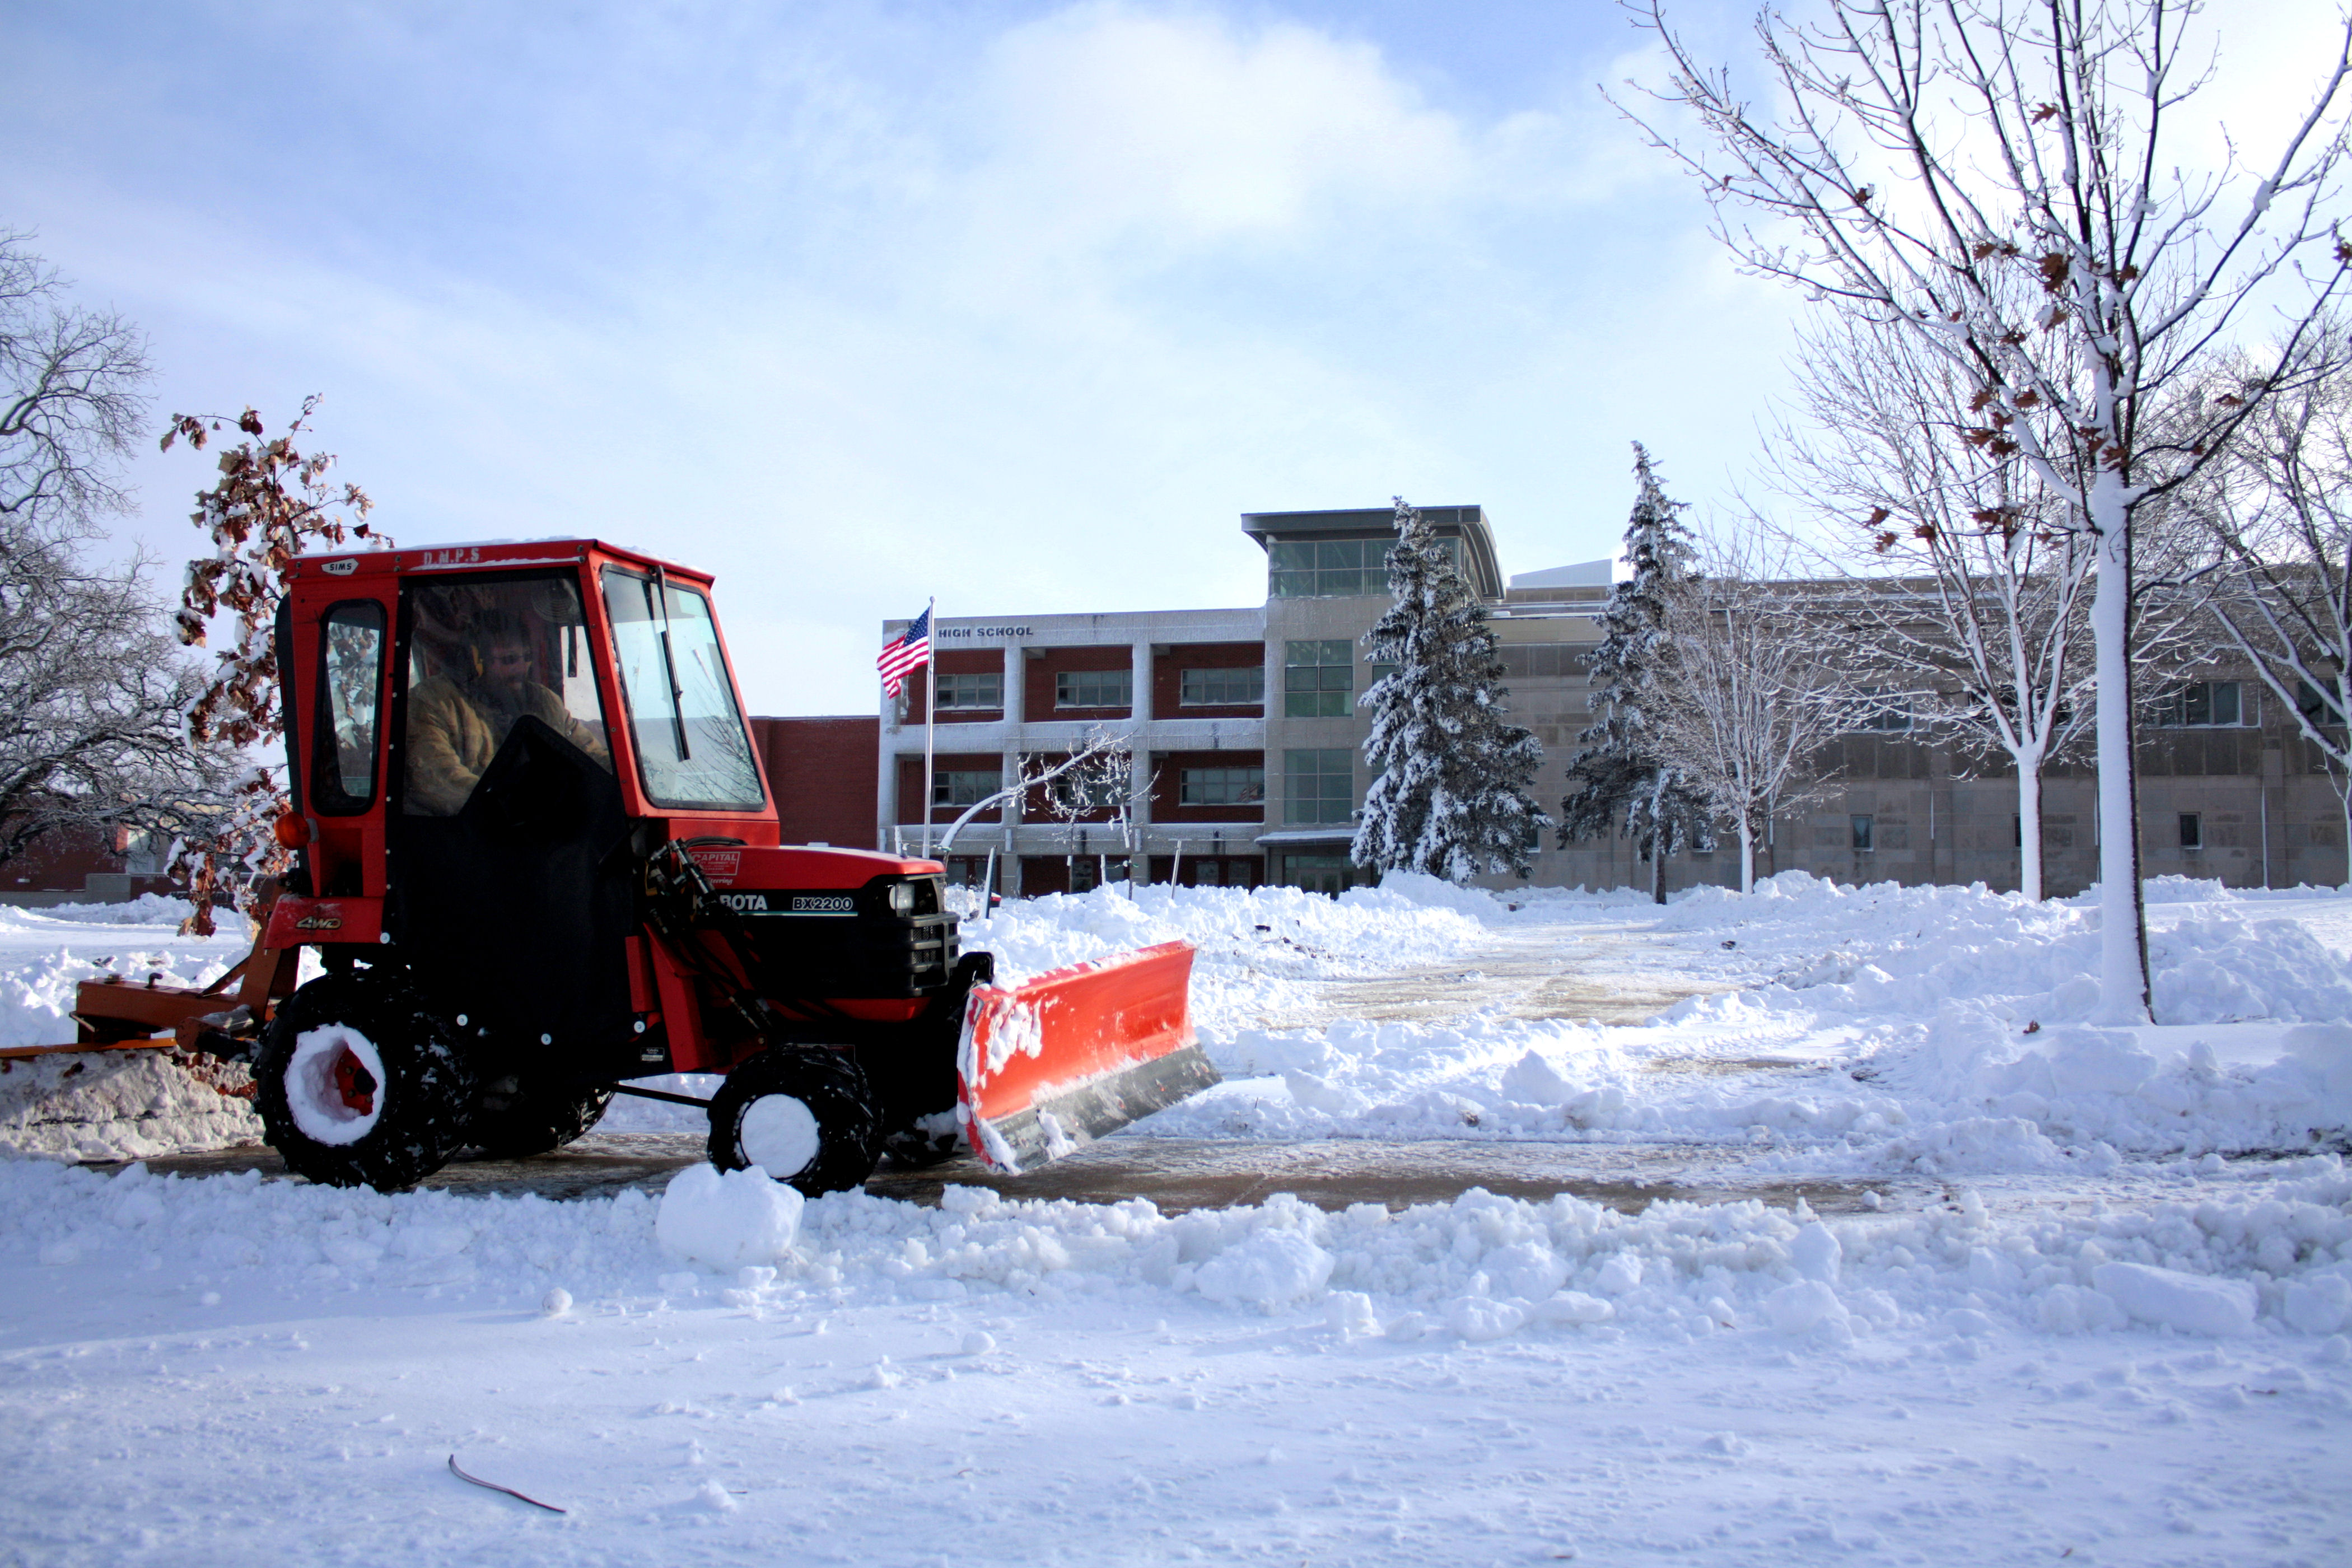 Snow plow clearing sidewalk in front of school